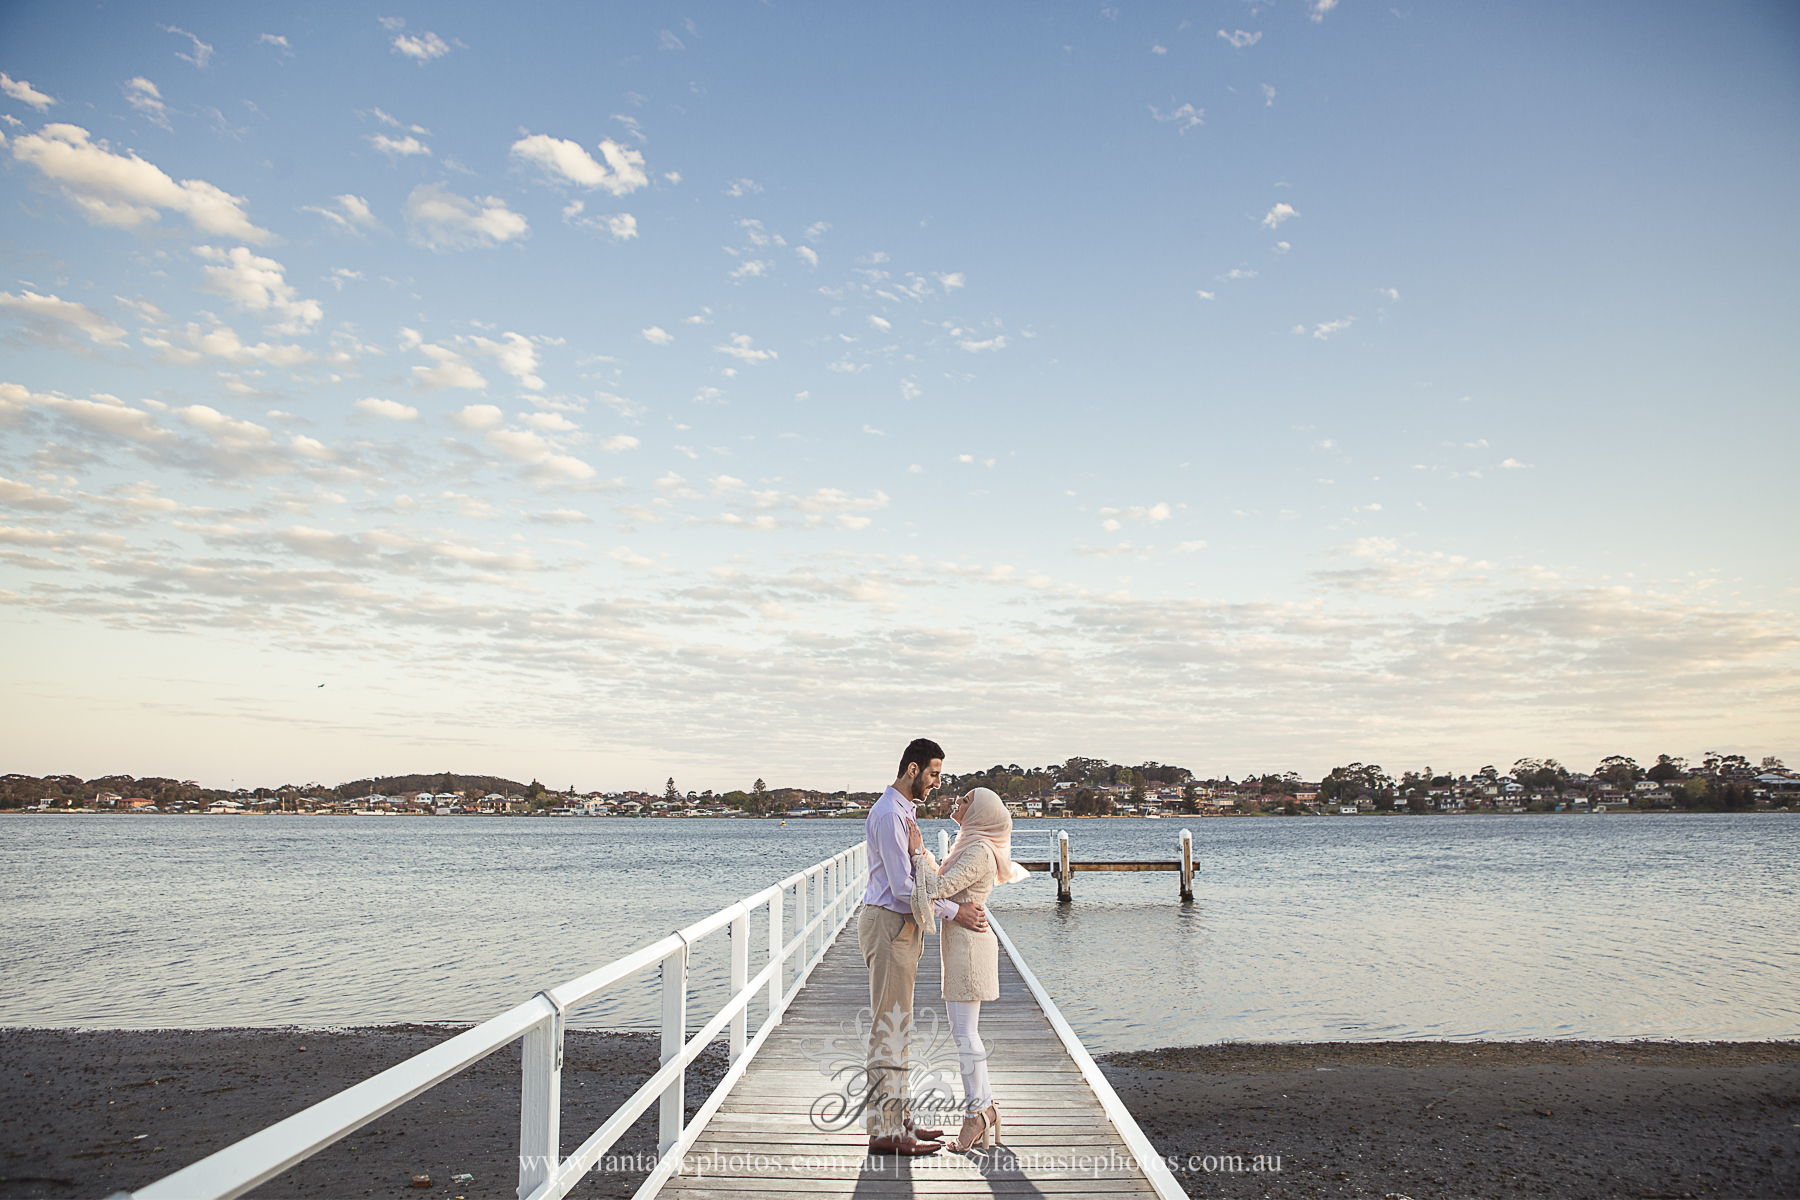 Wedding Photography Wollongong Jetty | Fantasie Photography